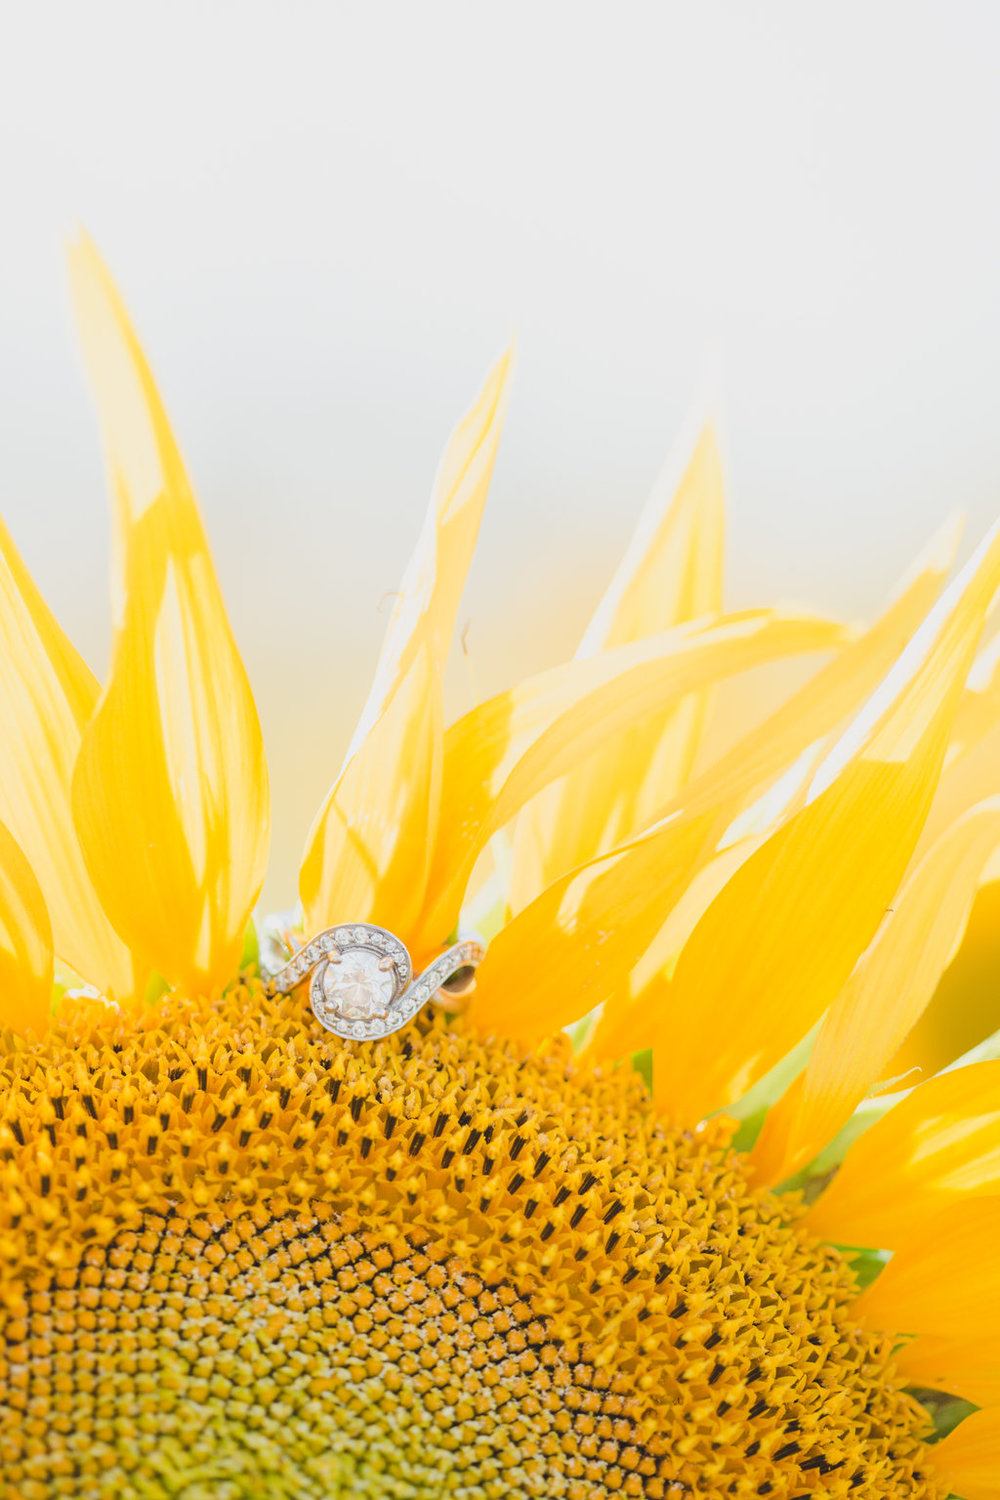 Sunflower Field Engagement Photos -- The Overwhelmed Bride Wedding Blog